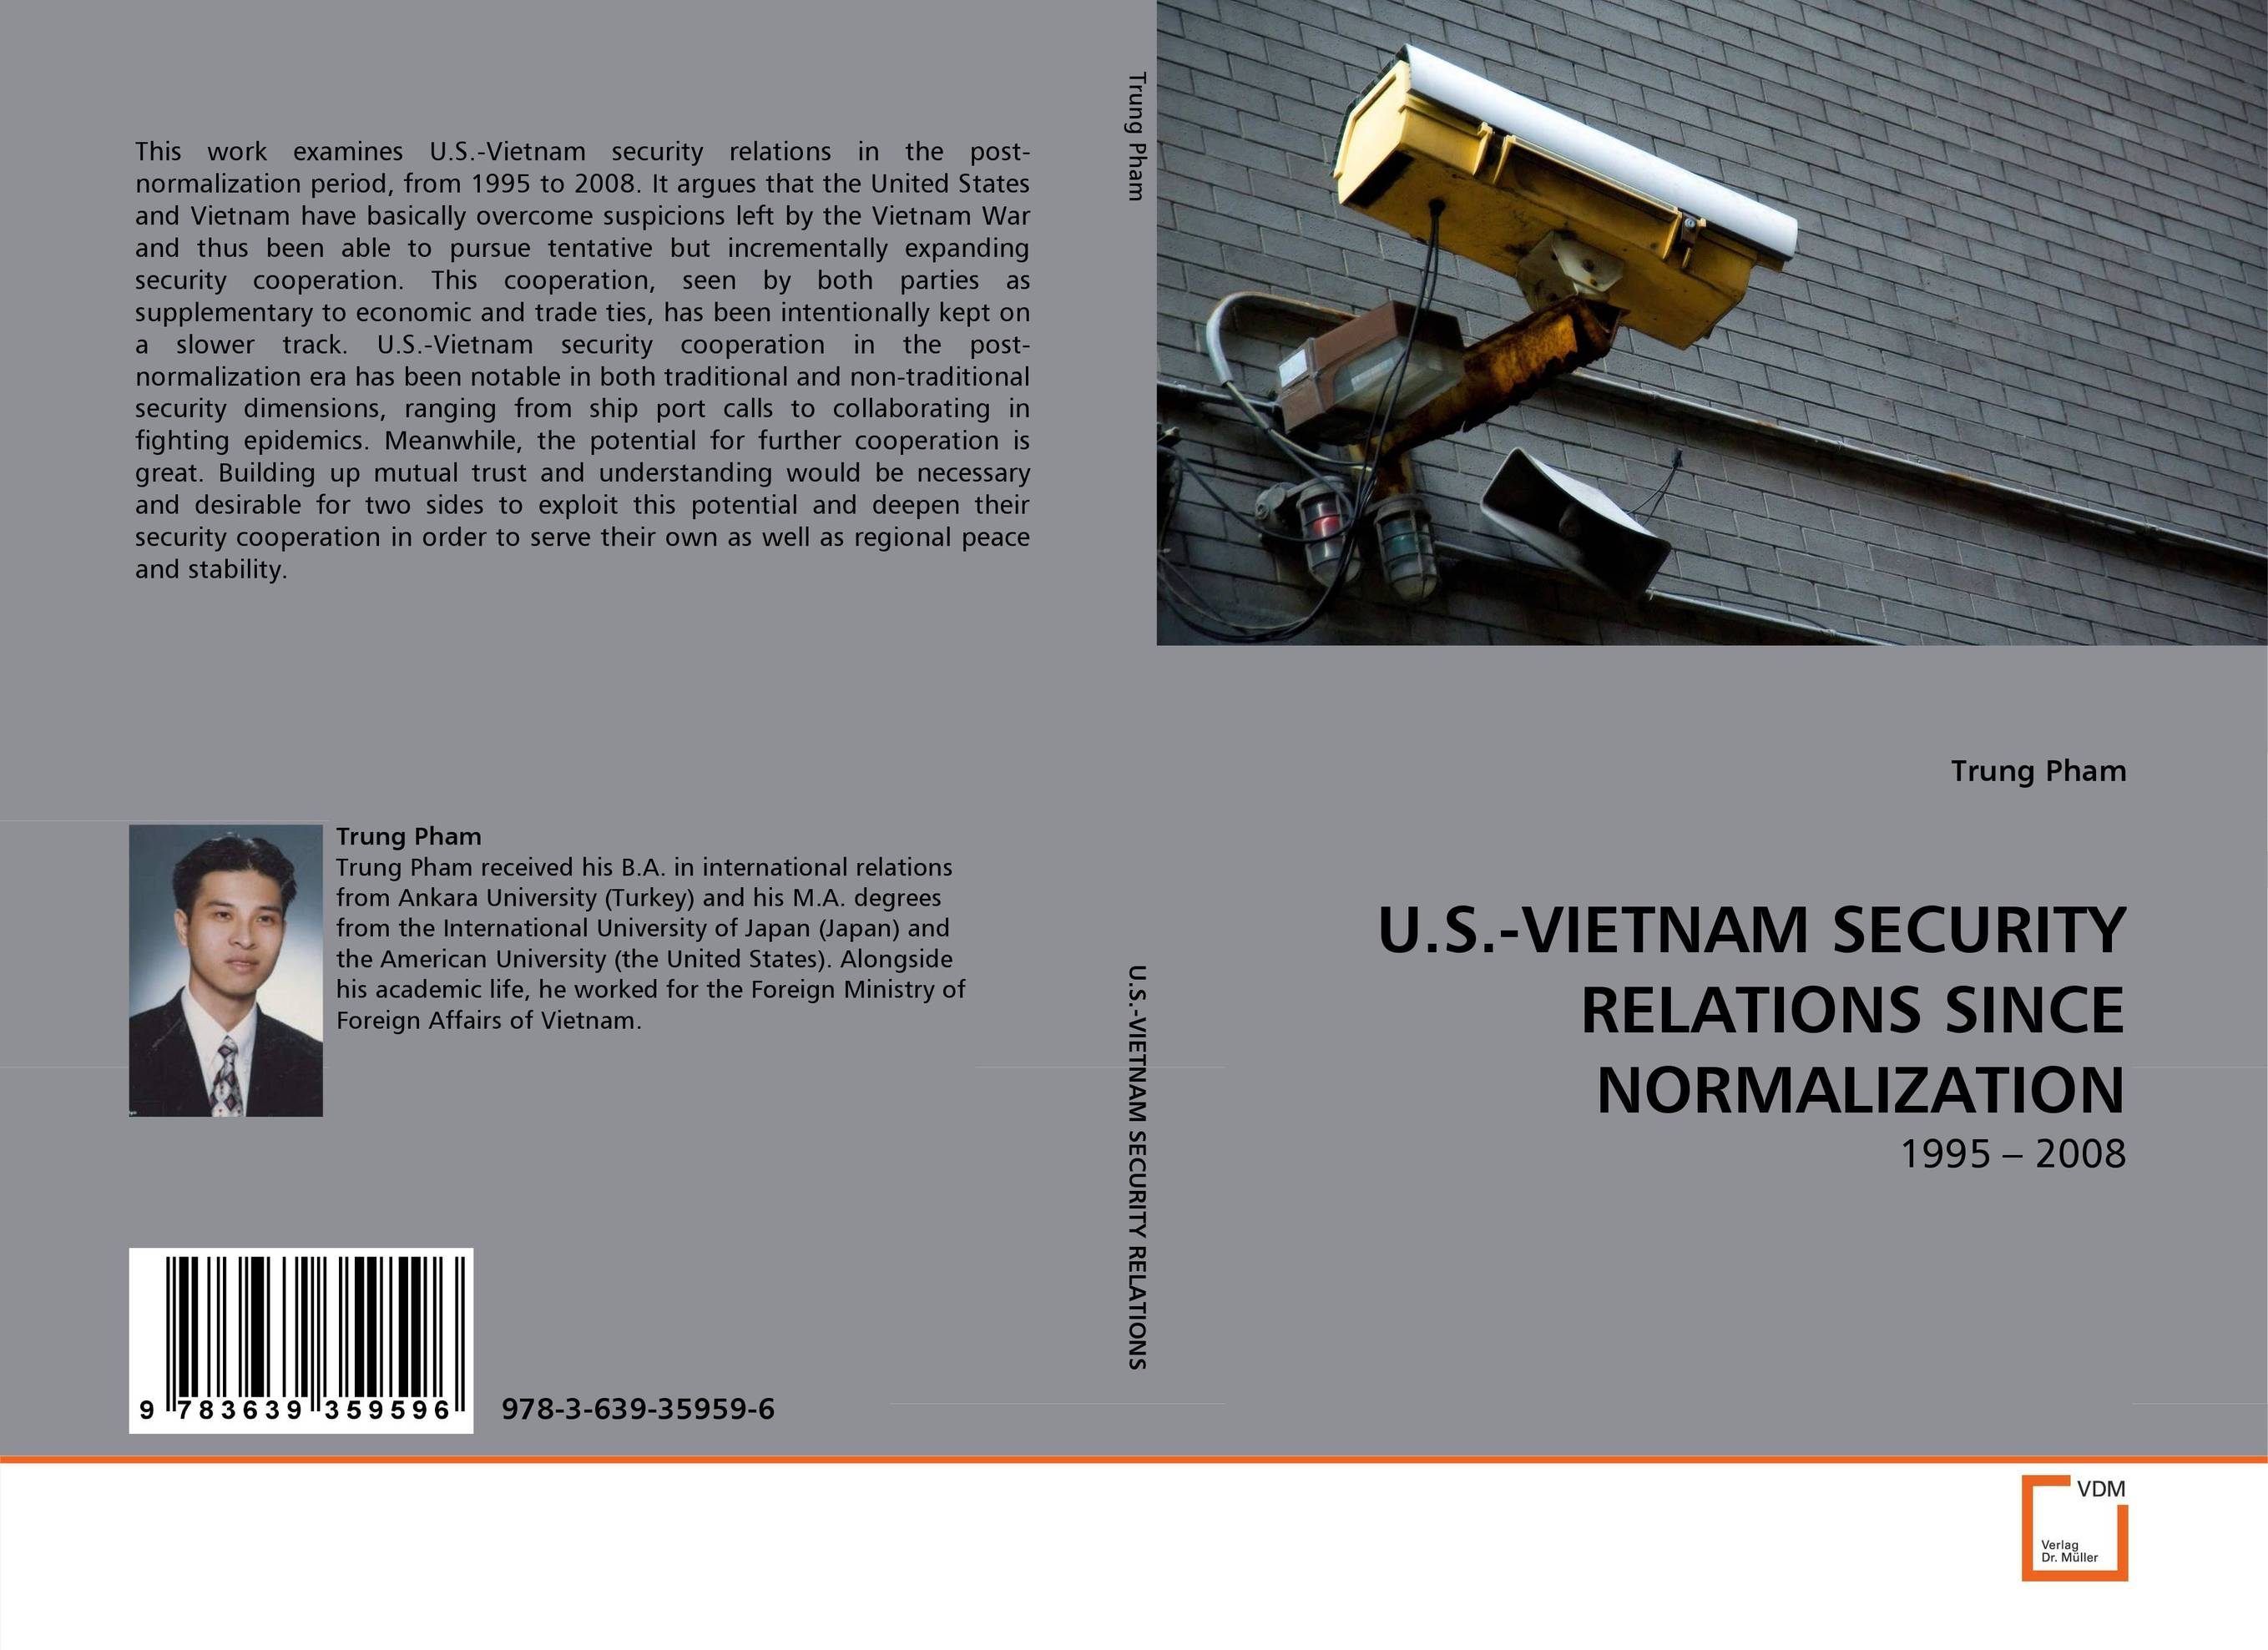 U.S.-VIETNAM SECURITY RELATIONS SINCE NORMALIZATION the cooperation model in state church relations